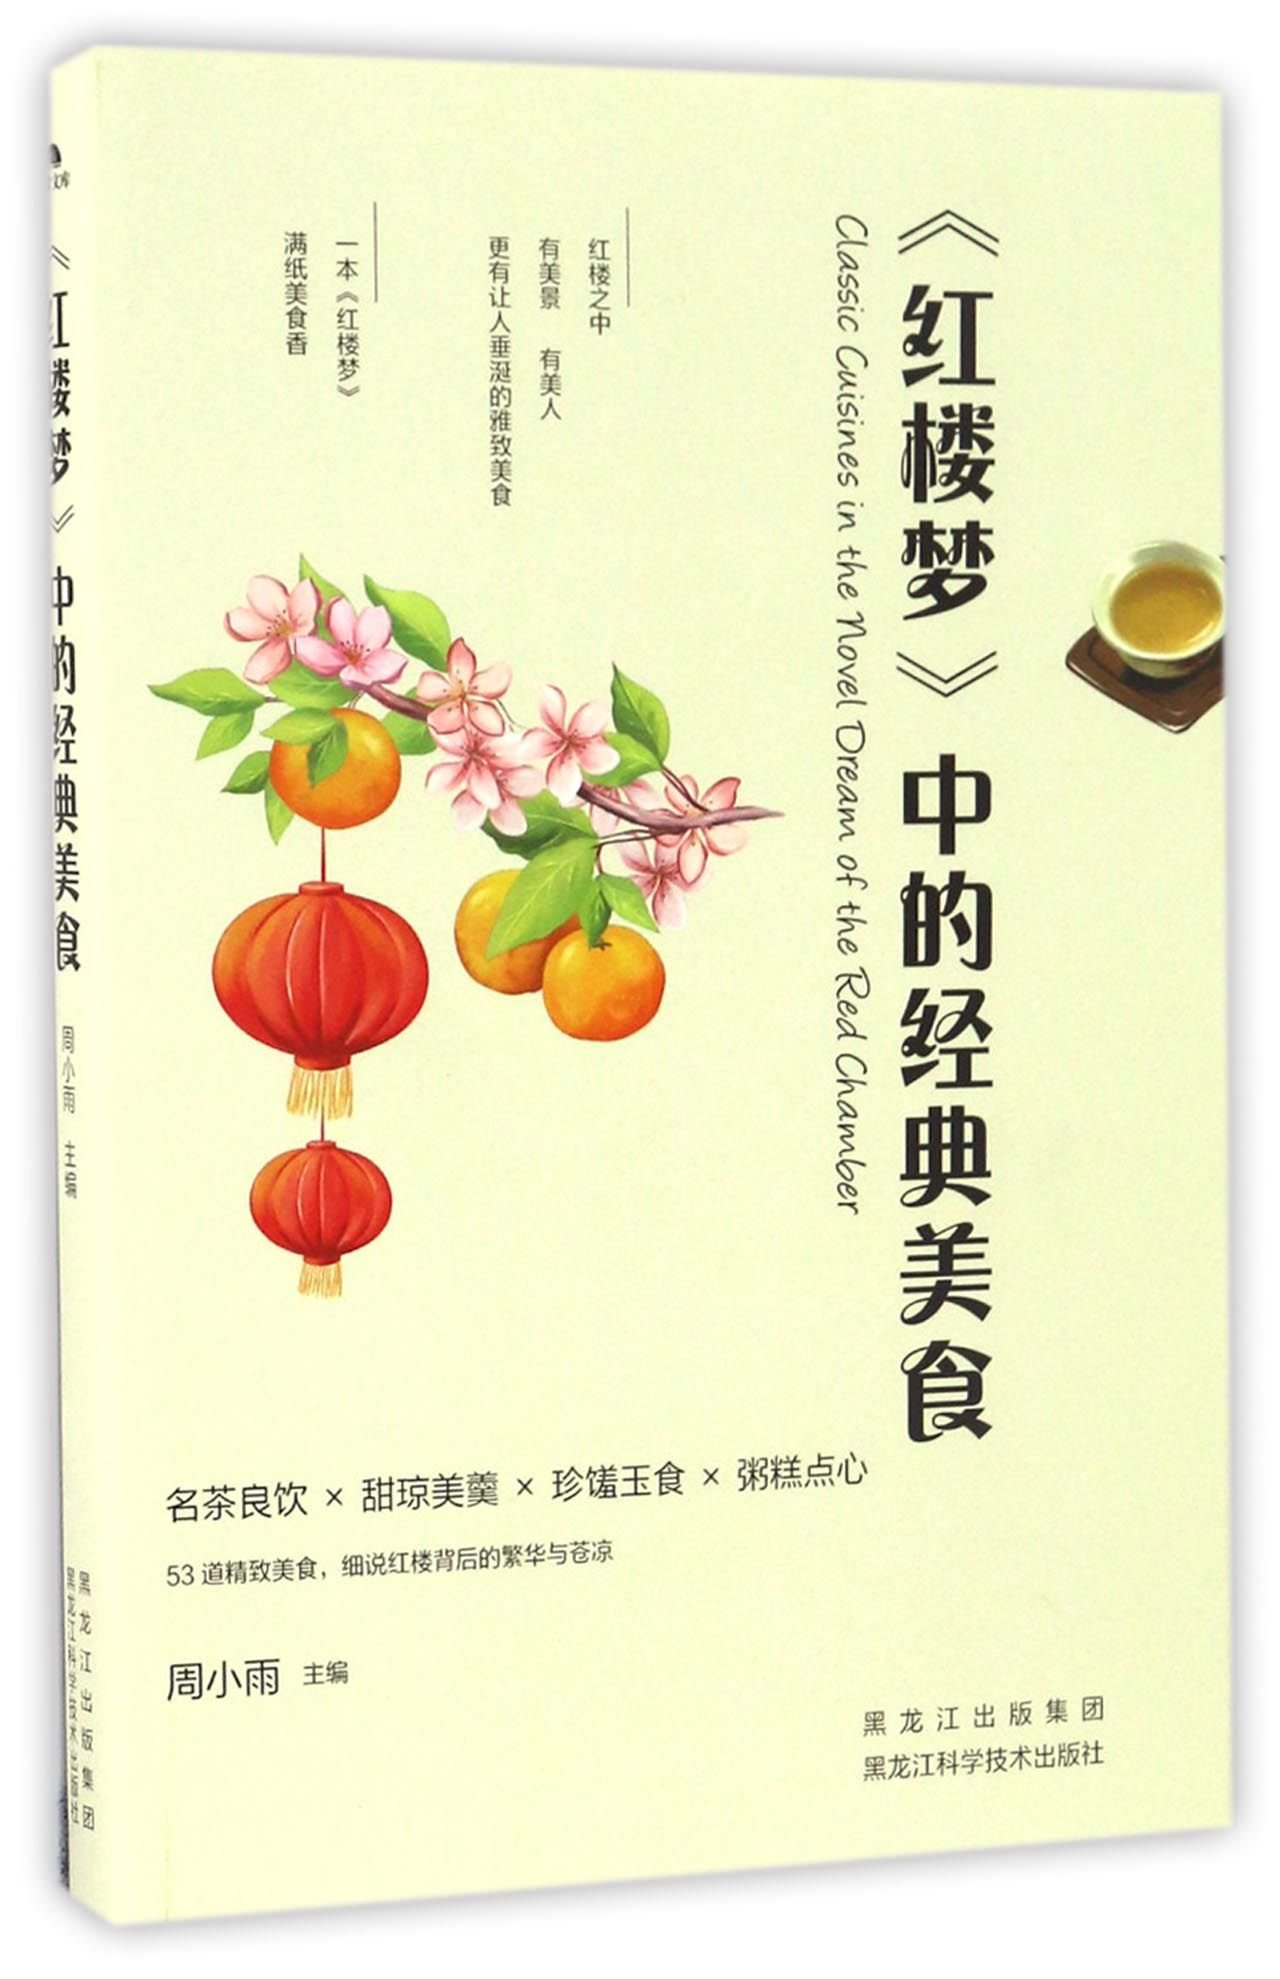 Download Classic Cuisines in the Novel Dream of the Red Chamber (Chinese Edition) ebook